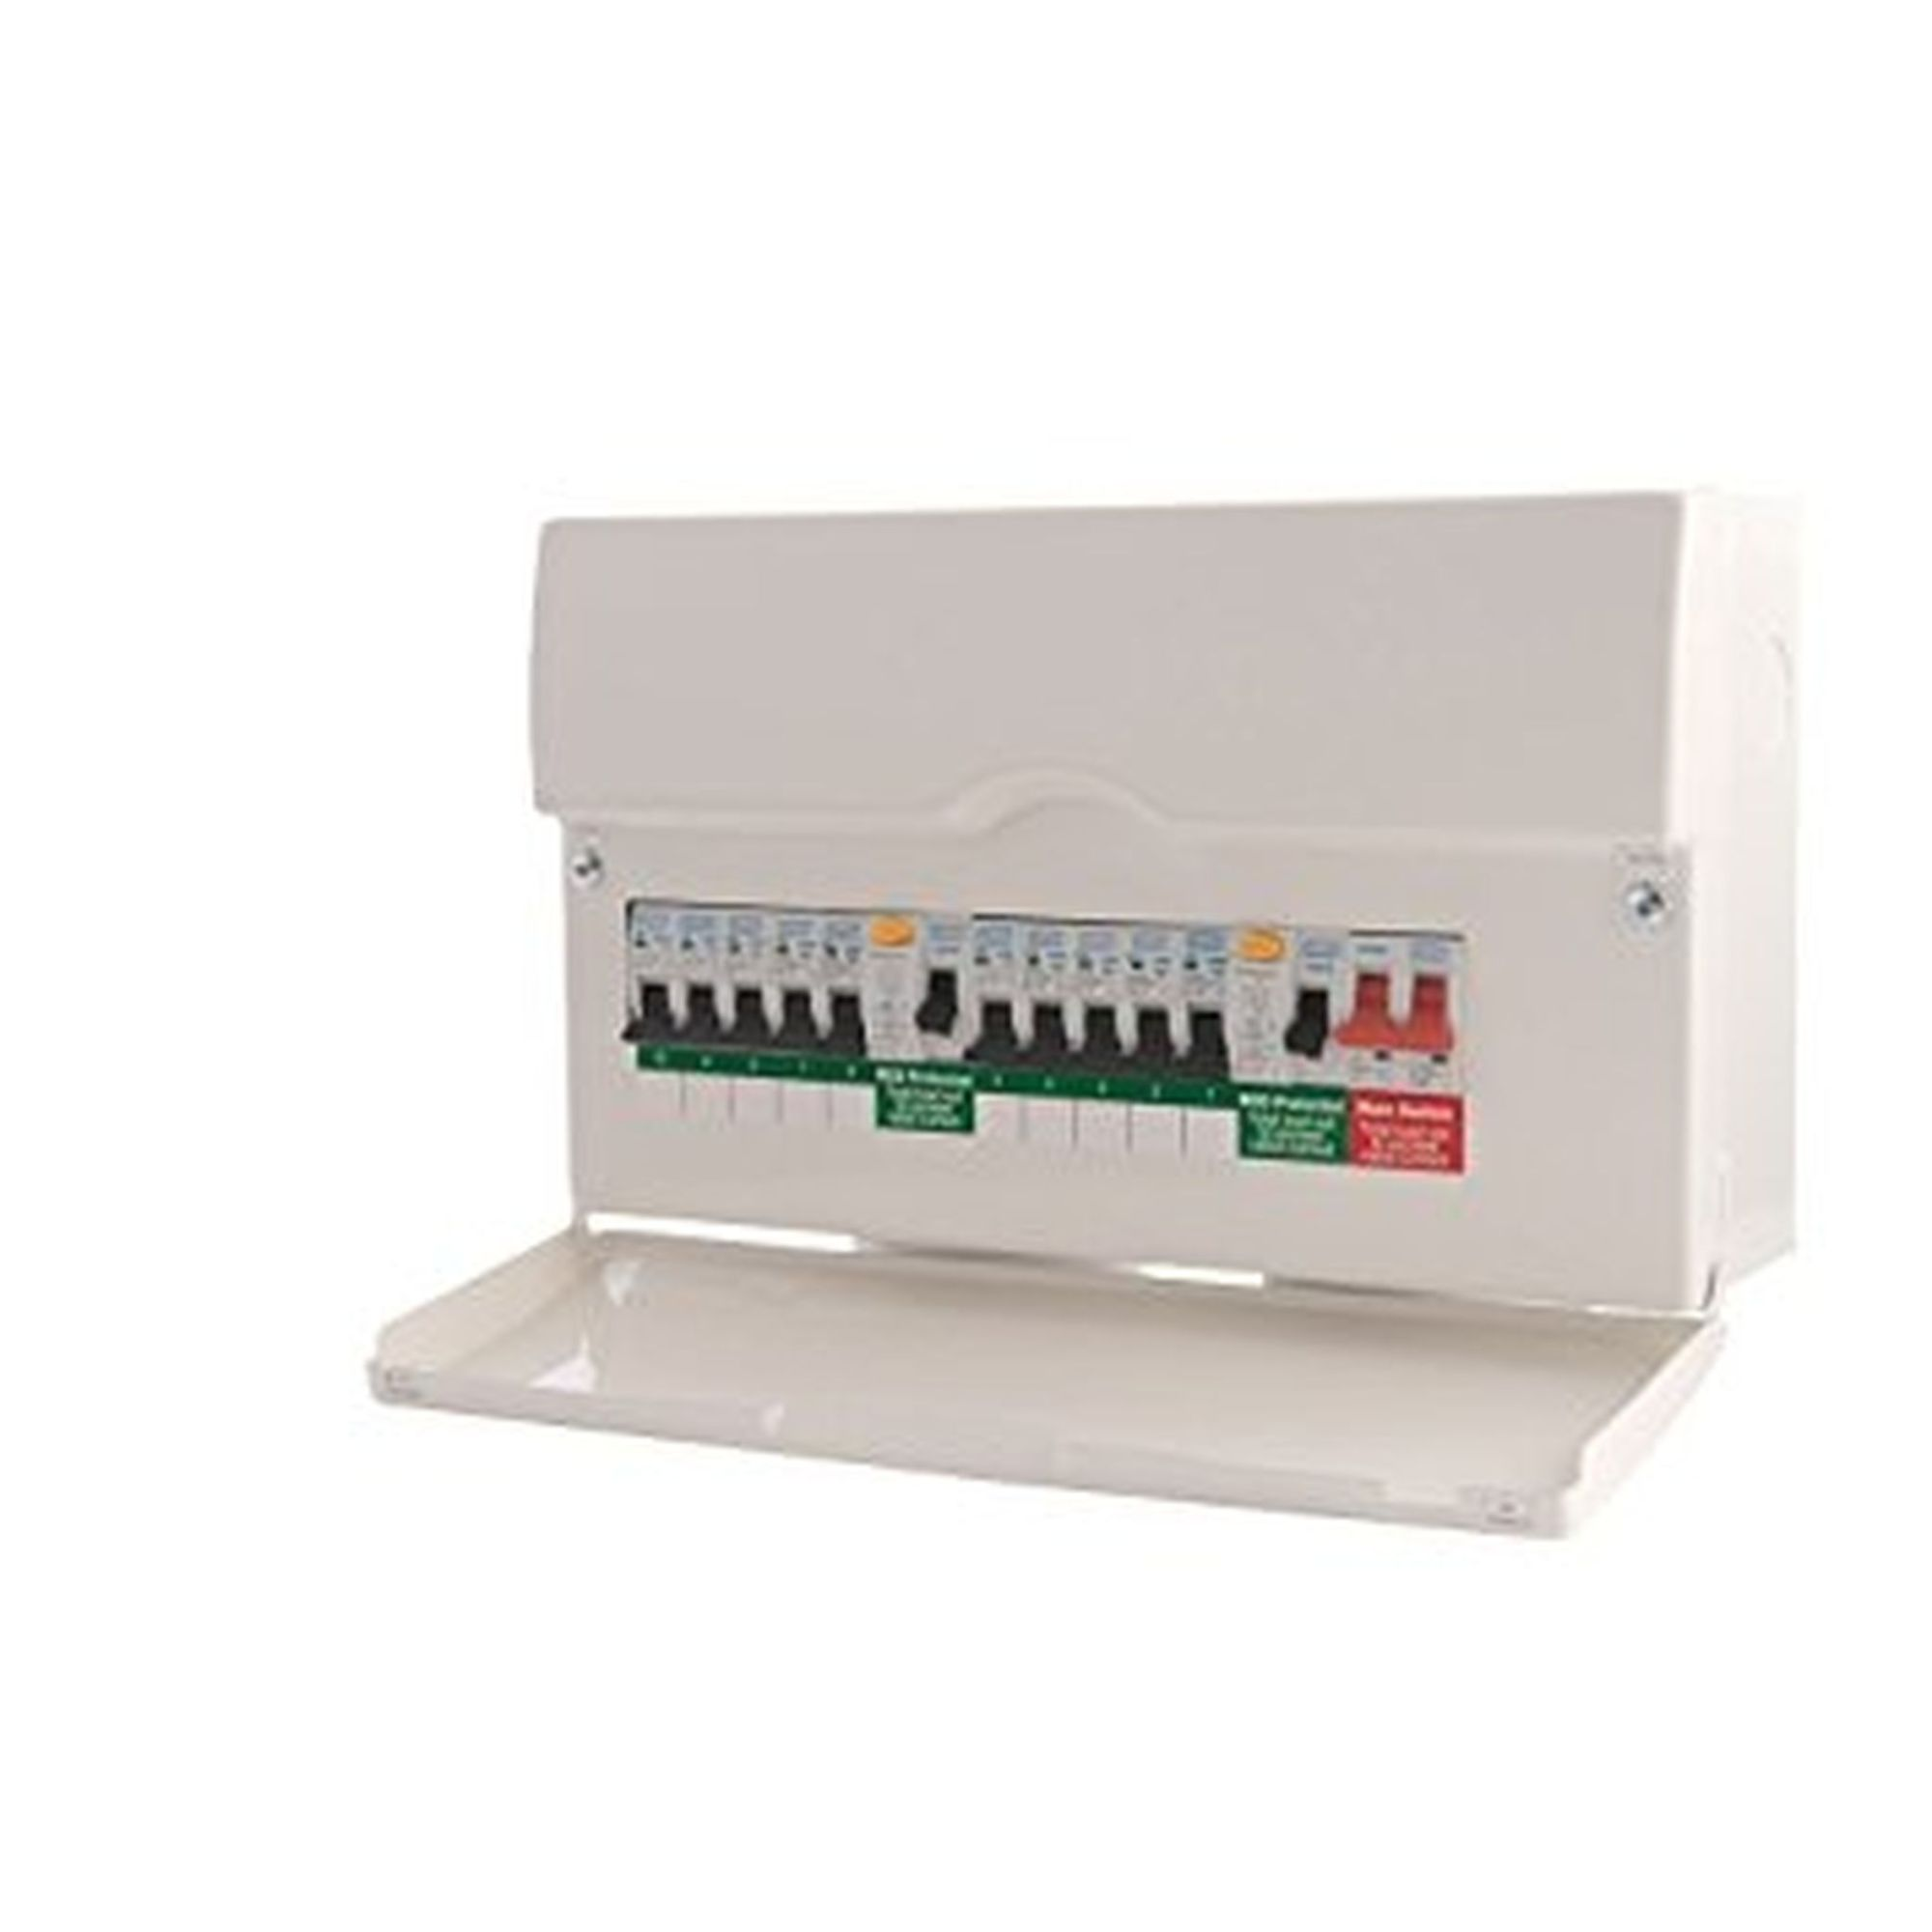 hight resolution of renew fuse box job of the year 2018 competition closed fuse box closed